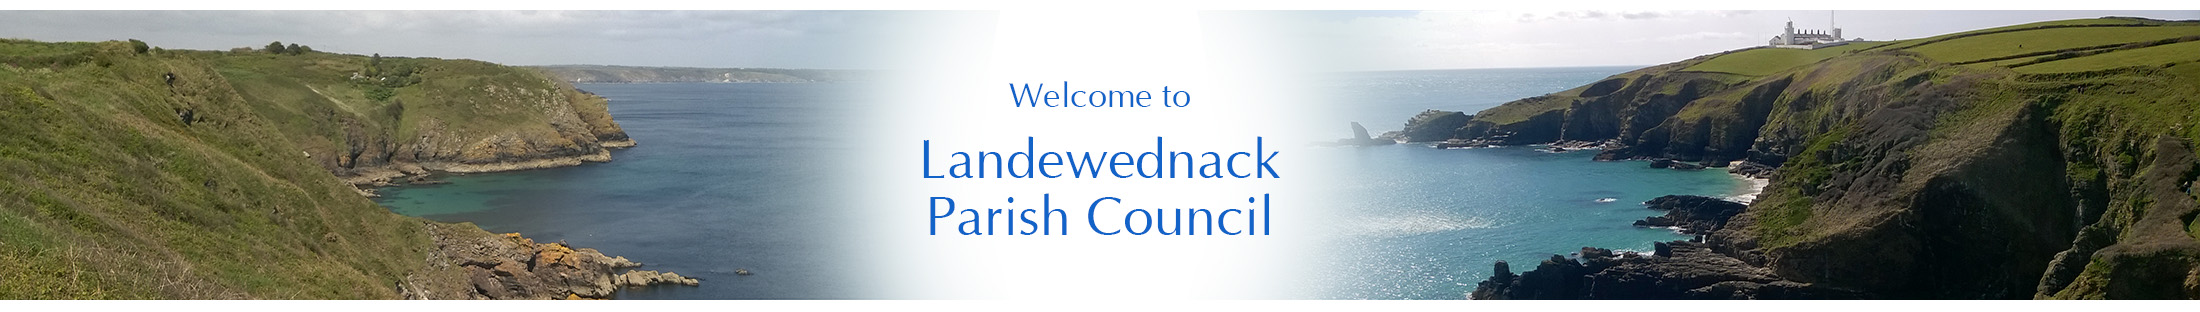 Header Image for Landewednack Parish Council